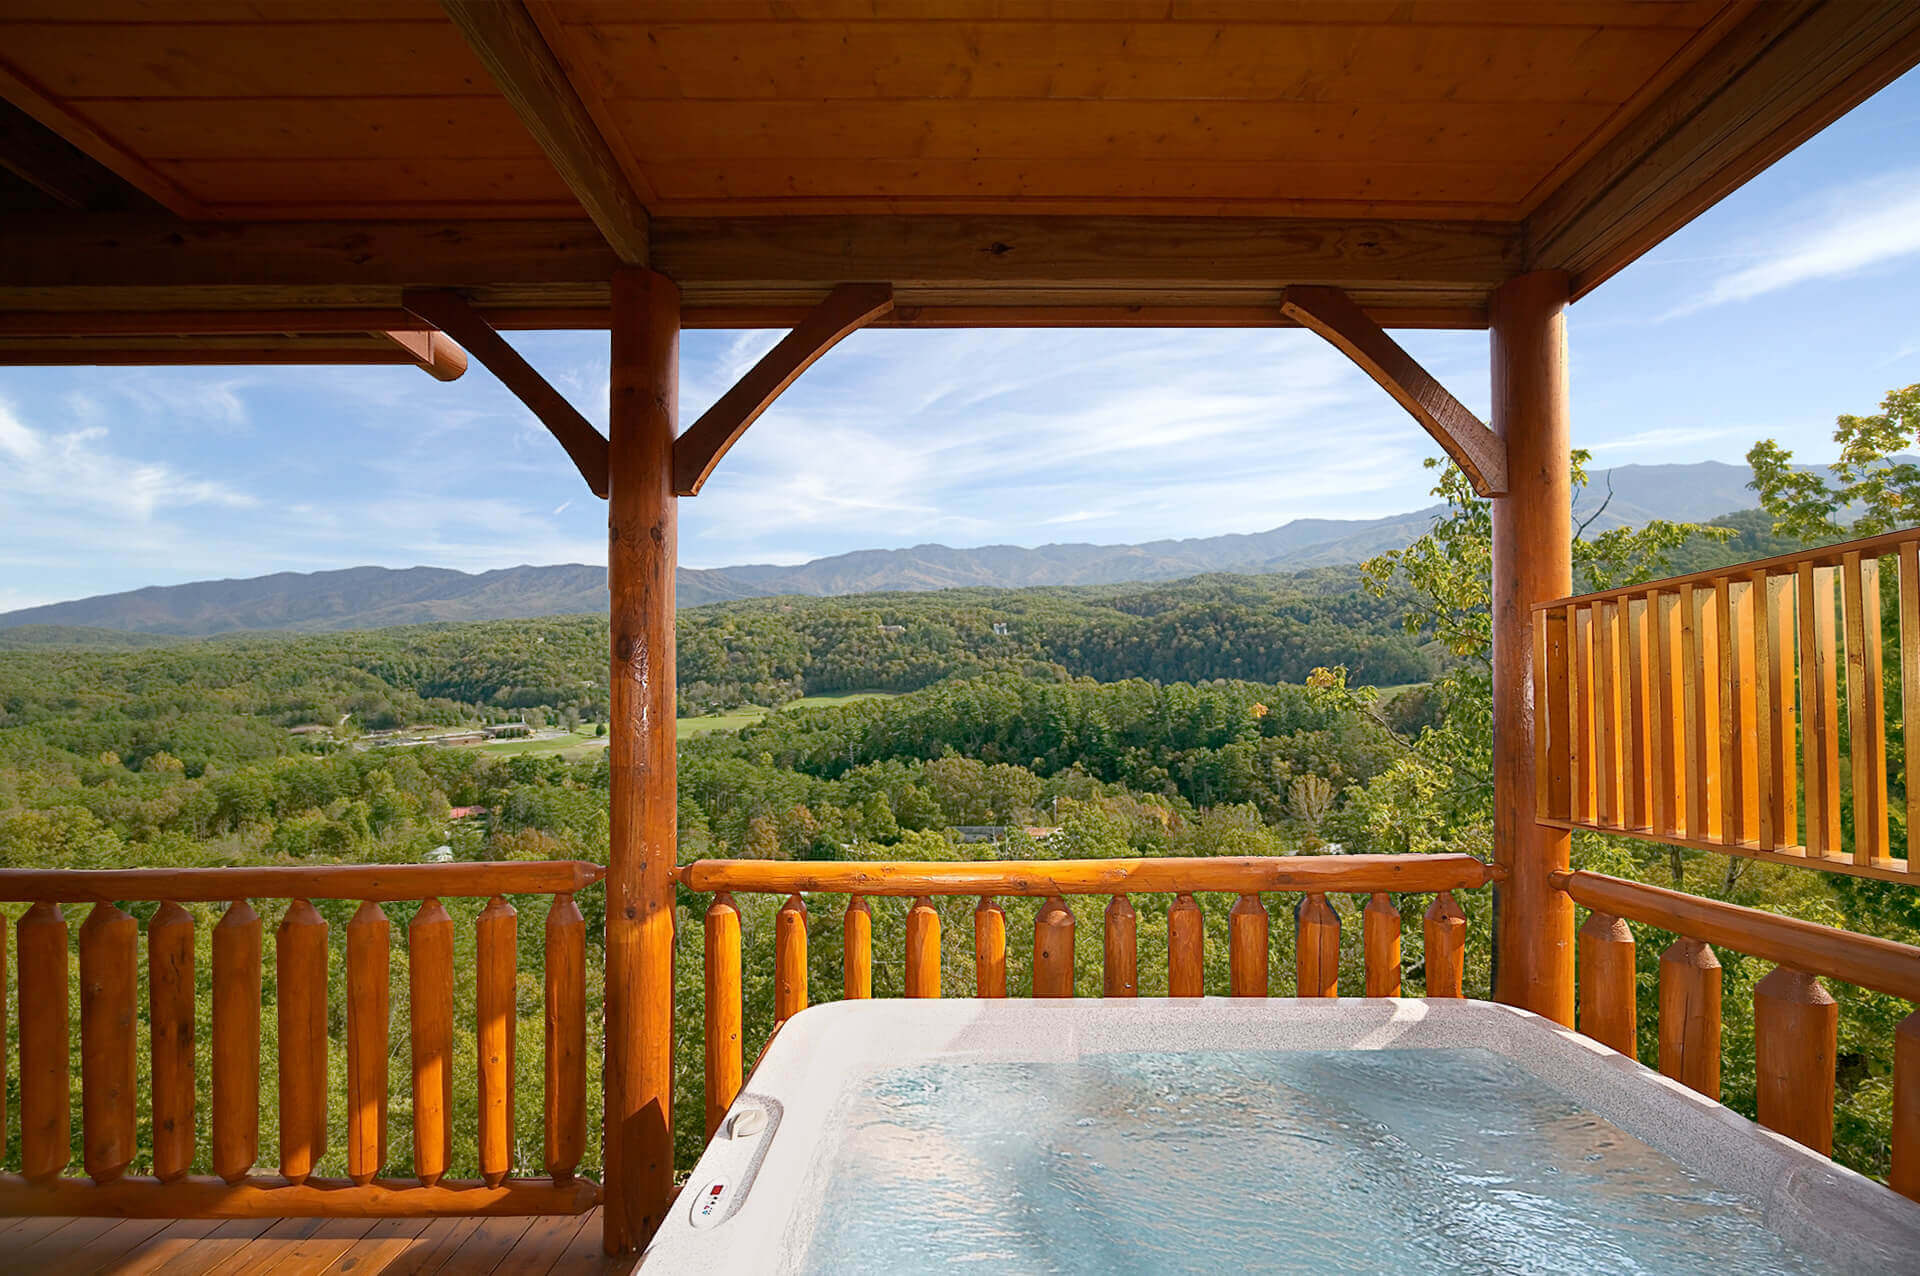 1 Bedroom Cabins in Gatlinburg, TN for Rent | Elk Springs Resort